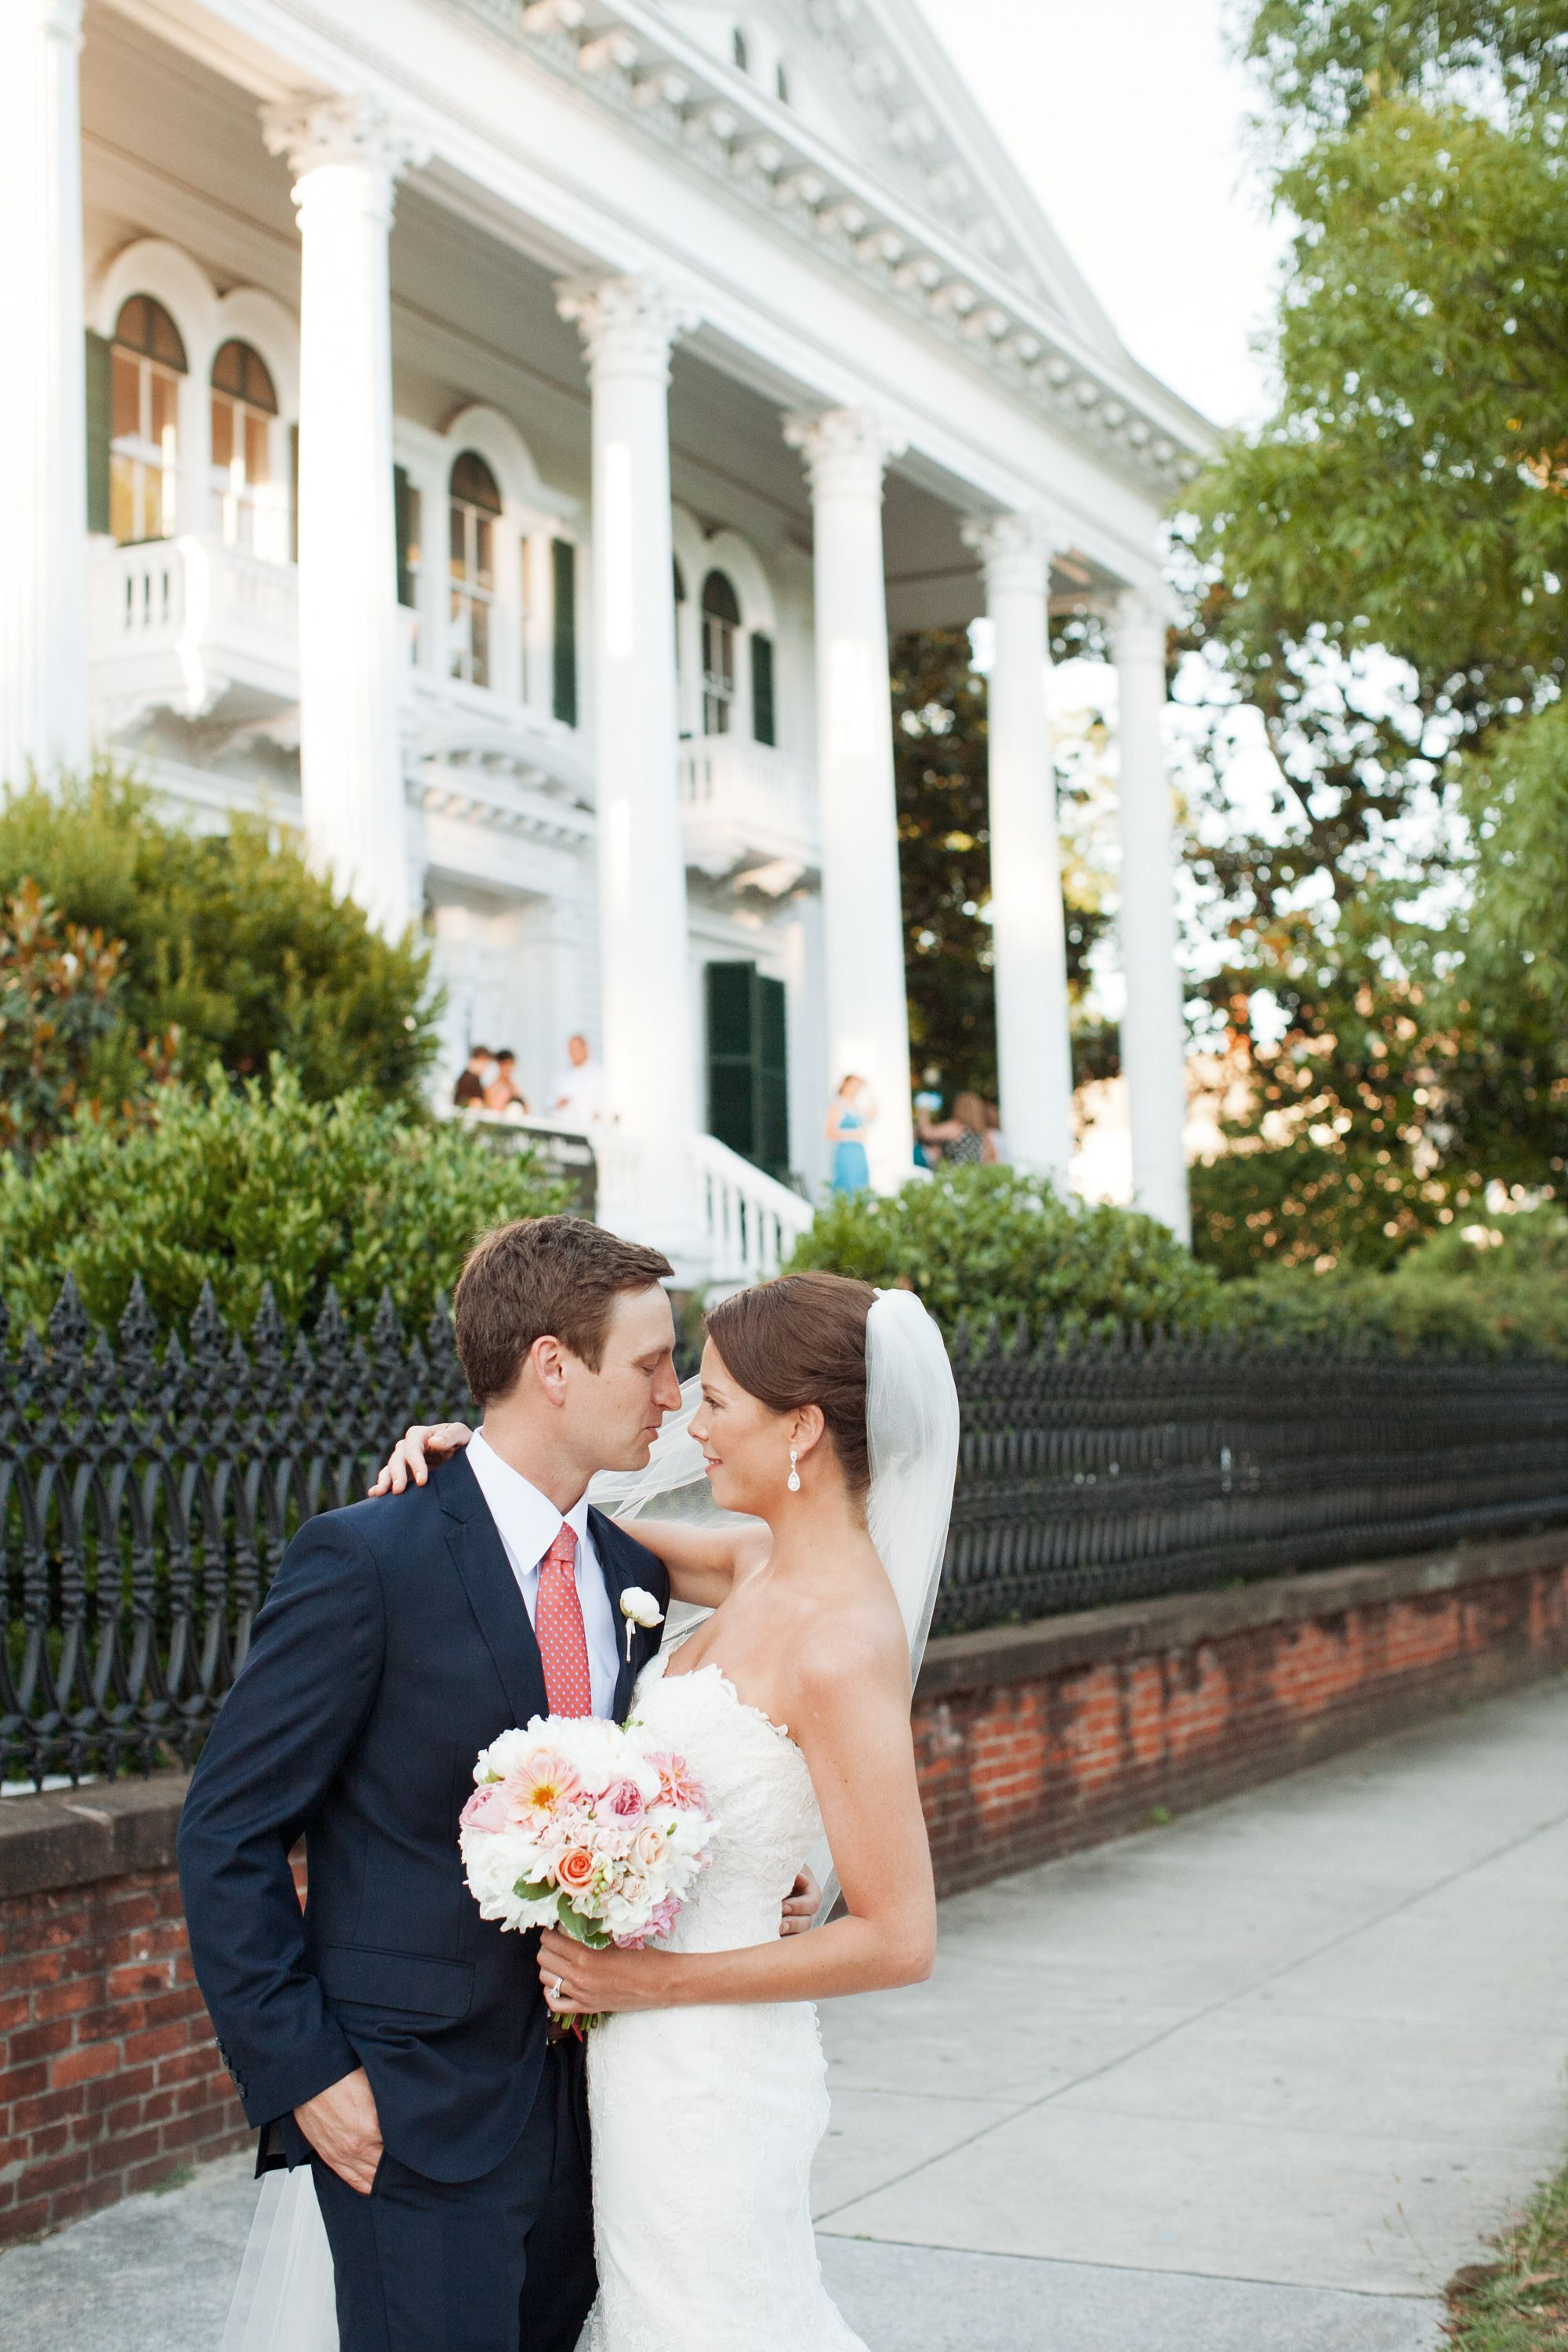 Beautiful Wilmington Nc Wedding At Bellamy Mansion Photography Scott Piner Scottpiner